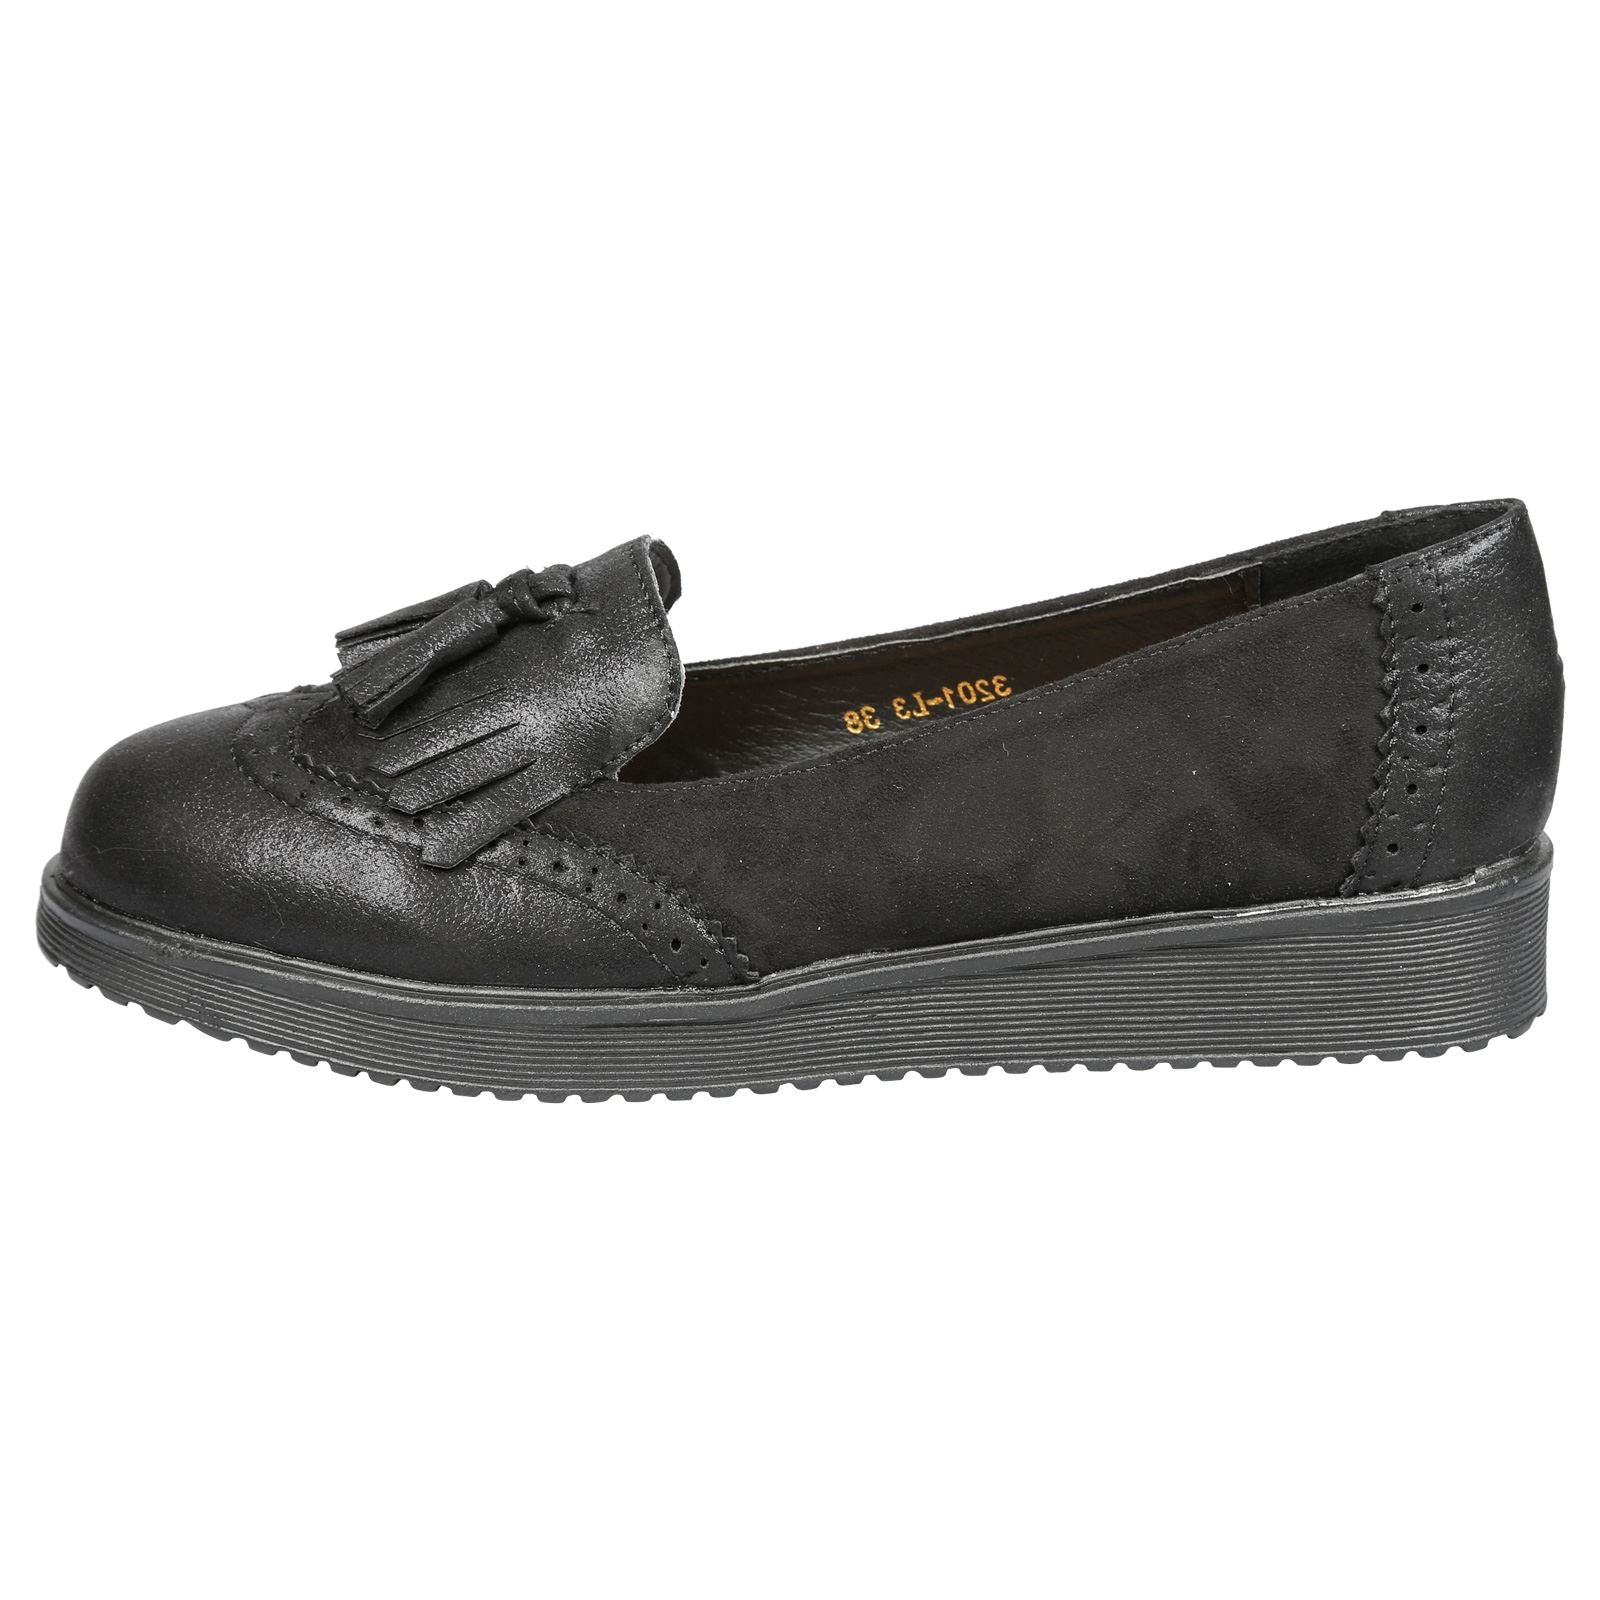 Leilani Two Tone Tassel Loafers in Black Faux Suede & Shimmer